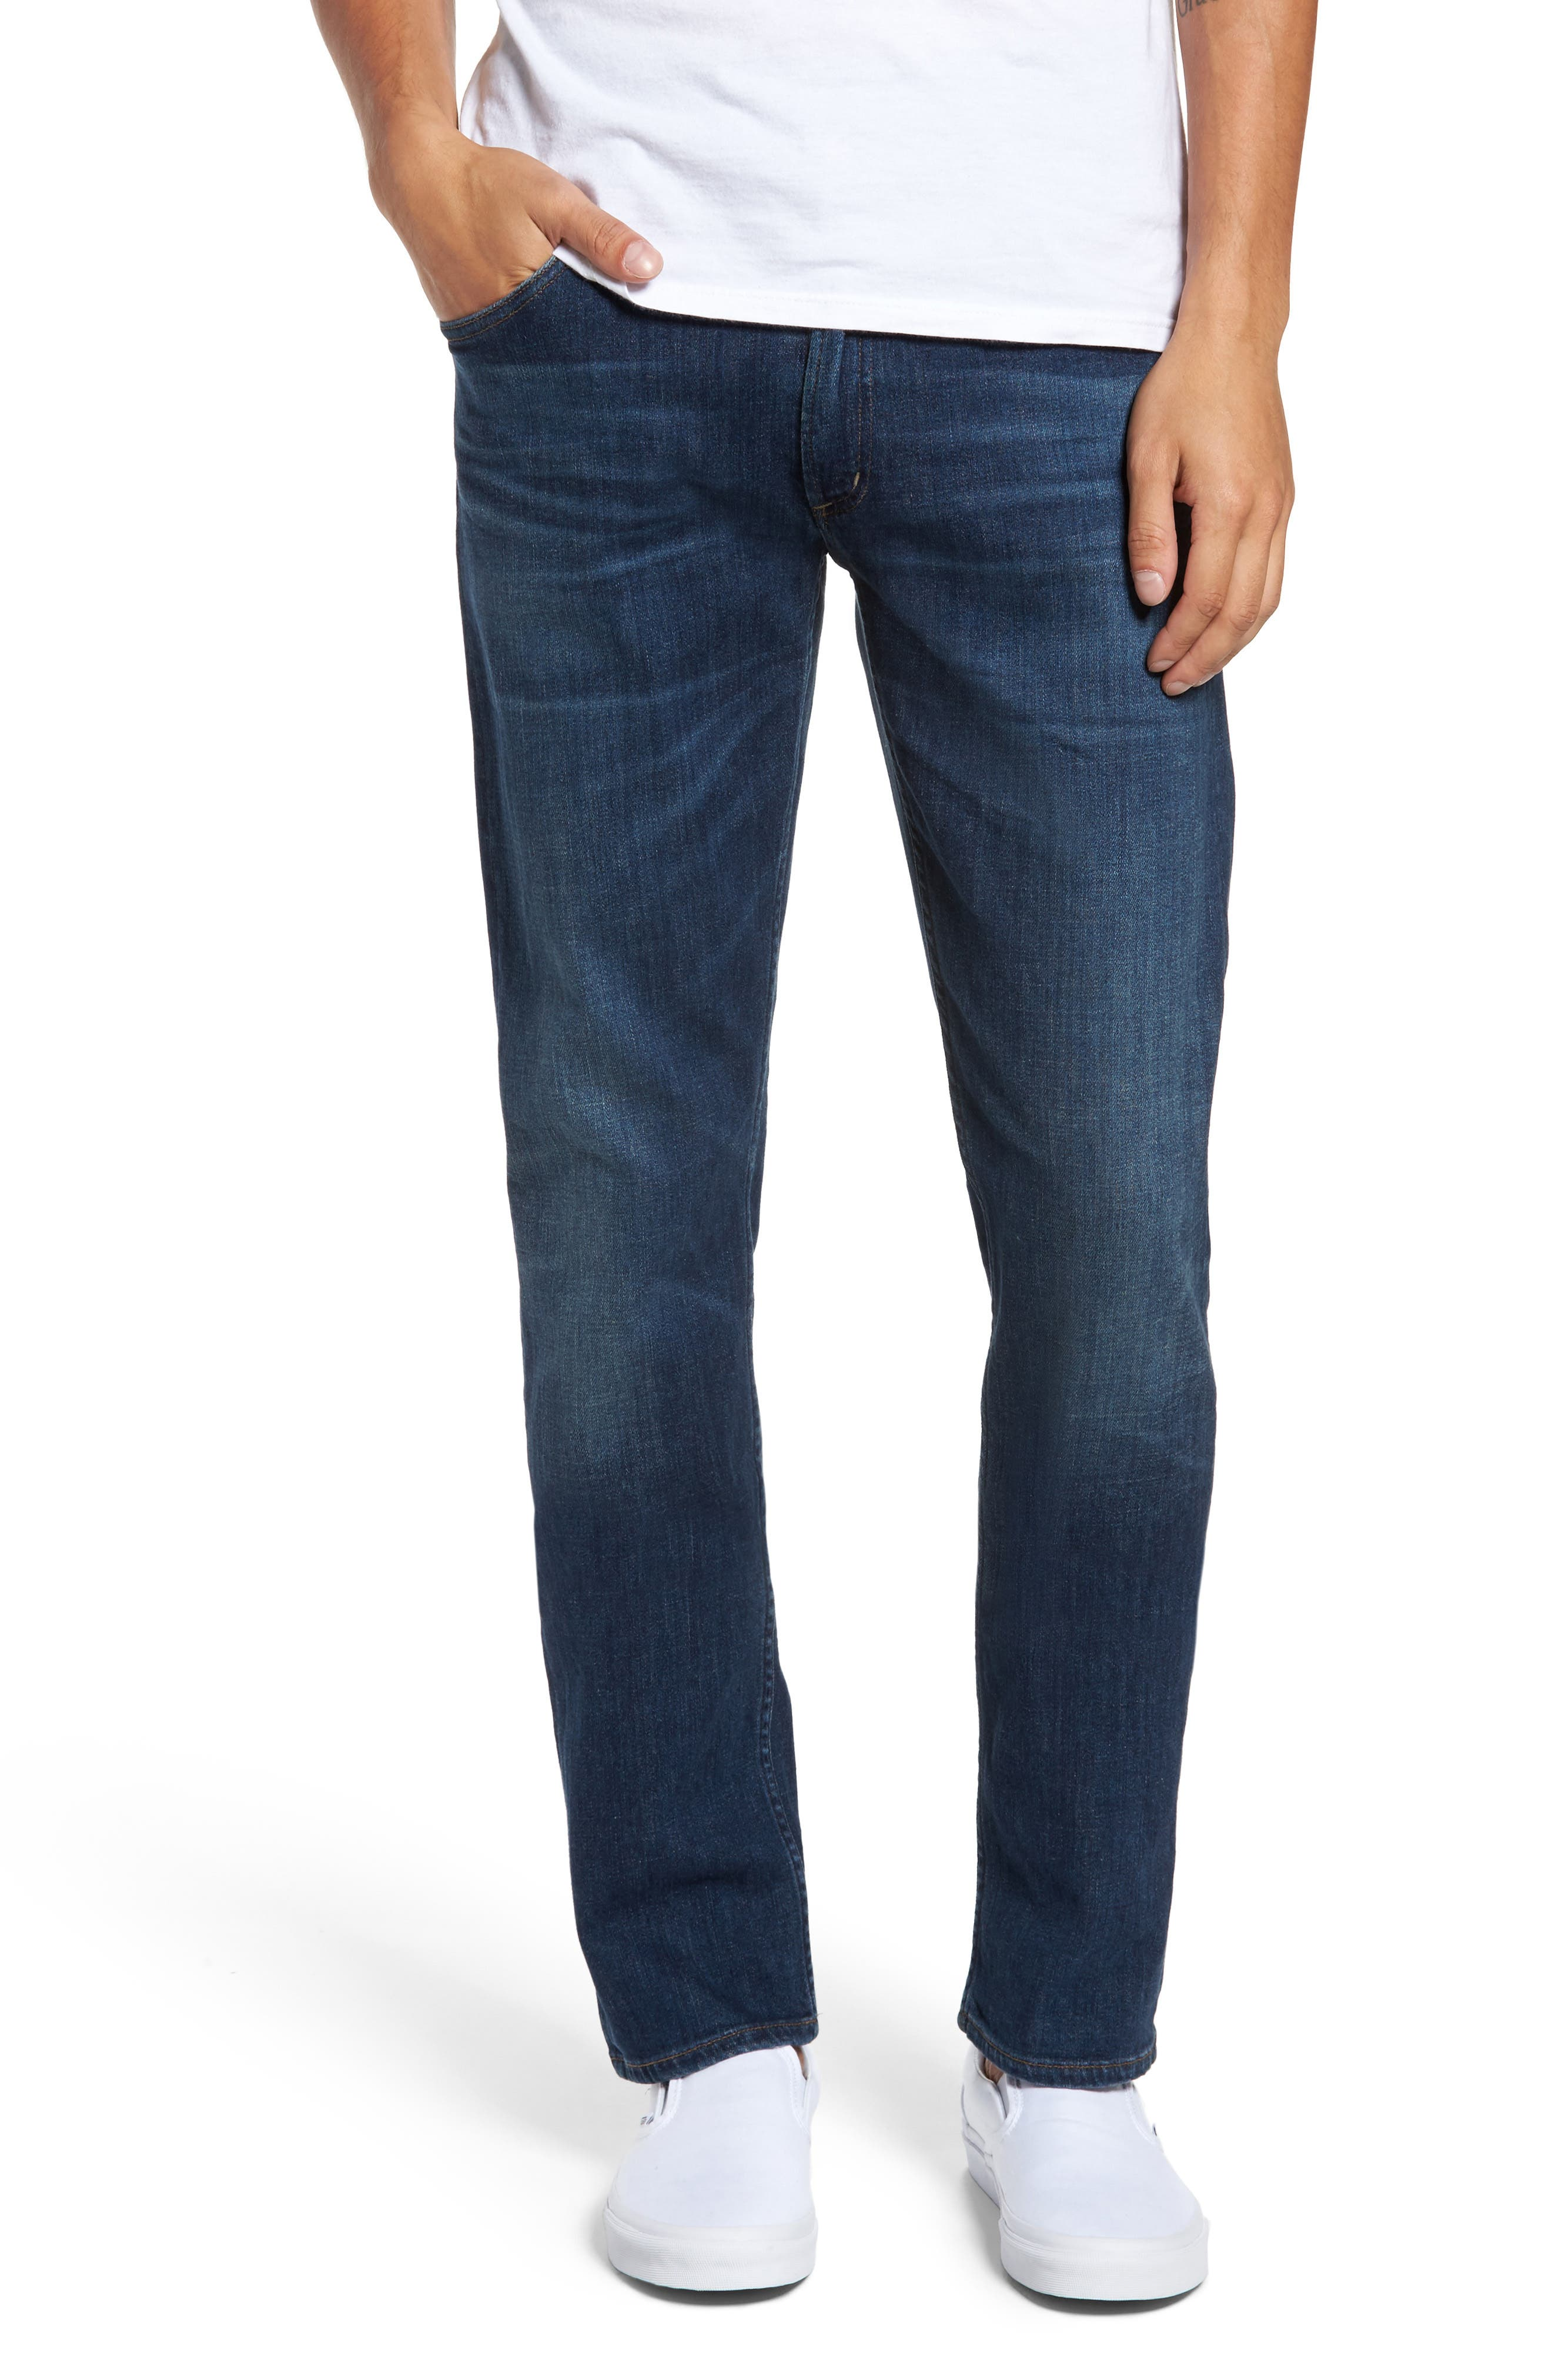 Bowery Slim Fit Jeans,                         Main,                         color, 401